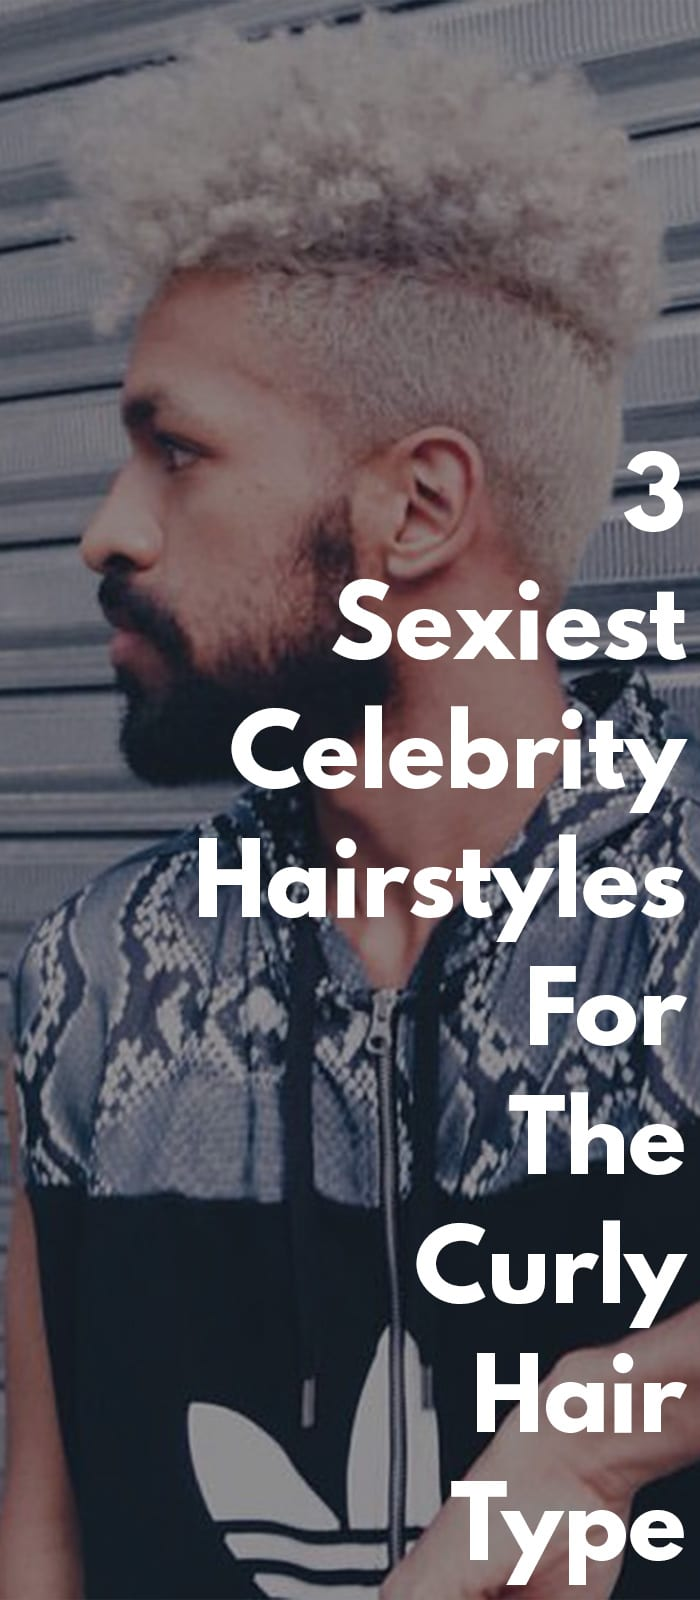 3-Sexiest-Celebrity-Hairstyles-For-The-Curly-Hair-Type